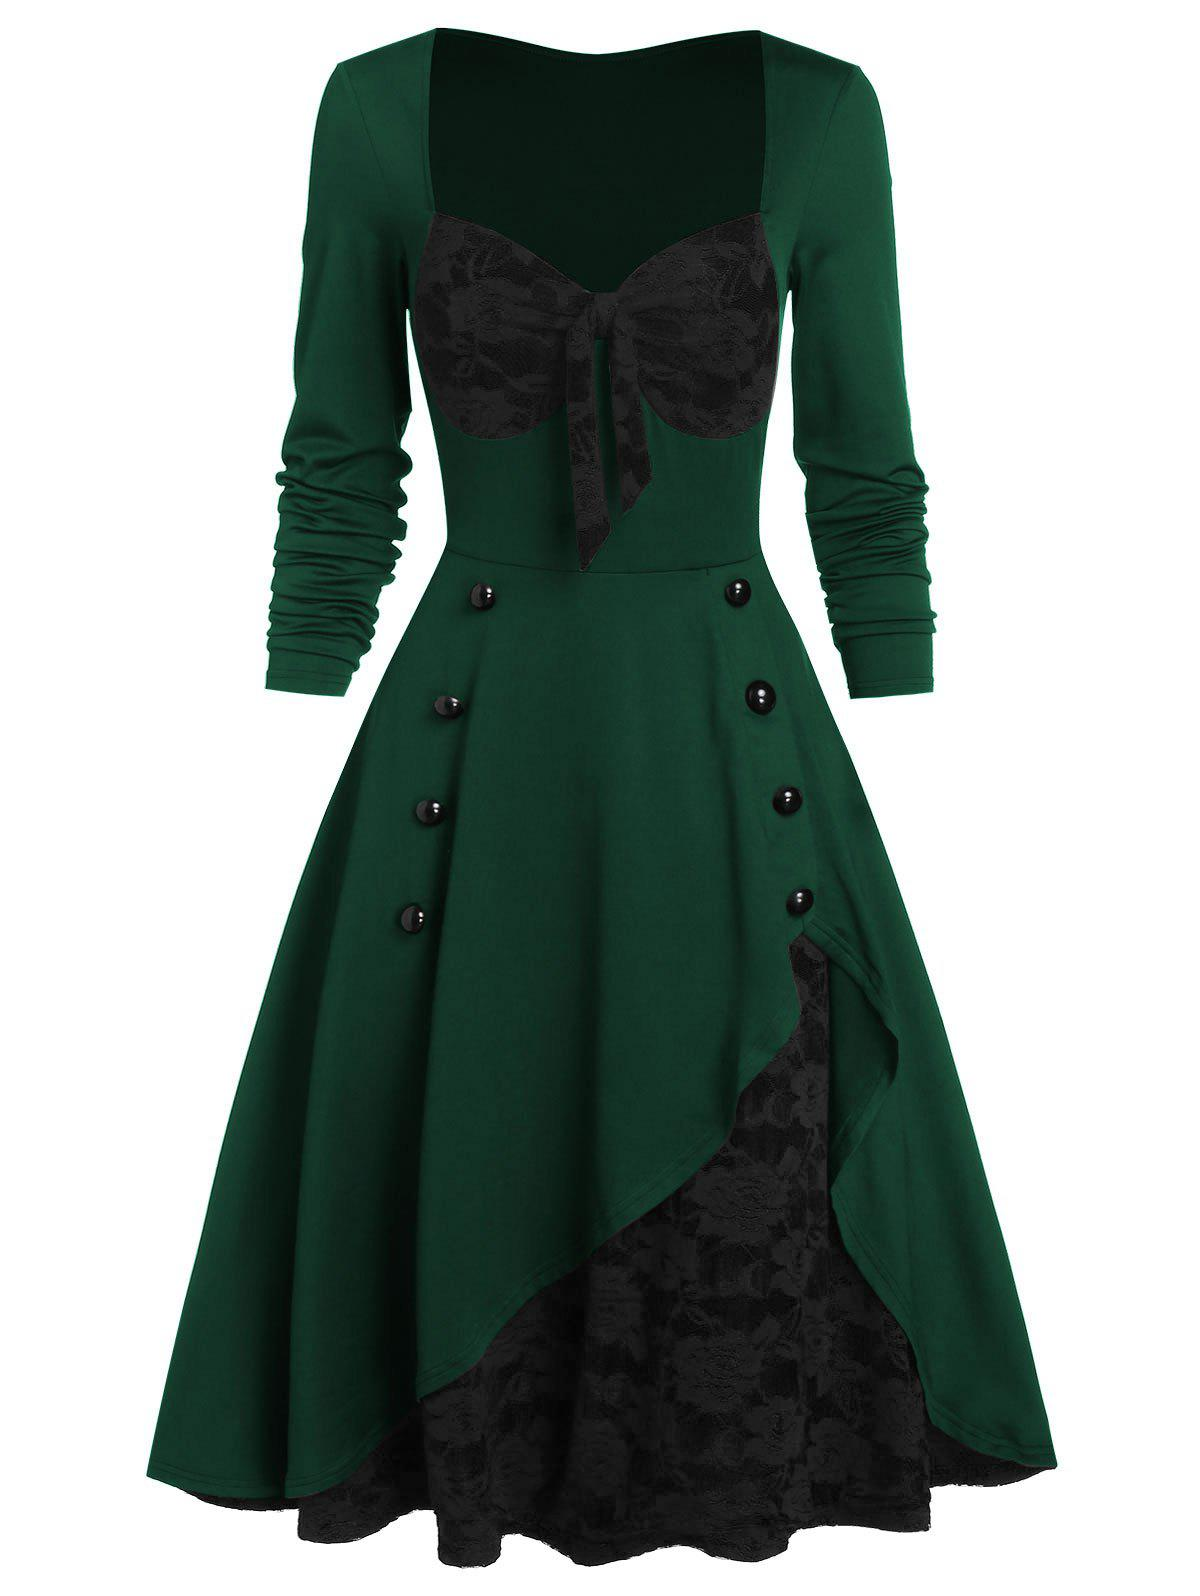 Flower Lace Insert Mock Button Bowknot Vintage Dress - DEEP GREEN XL